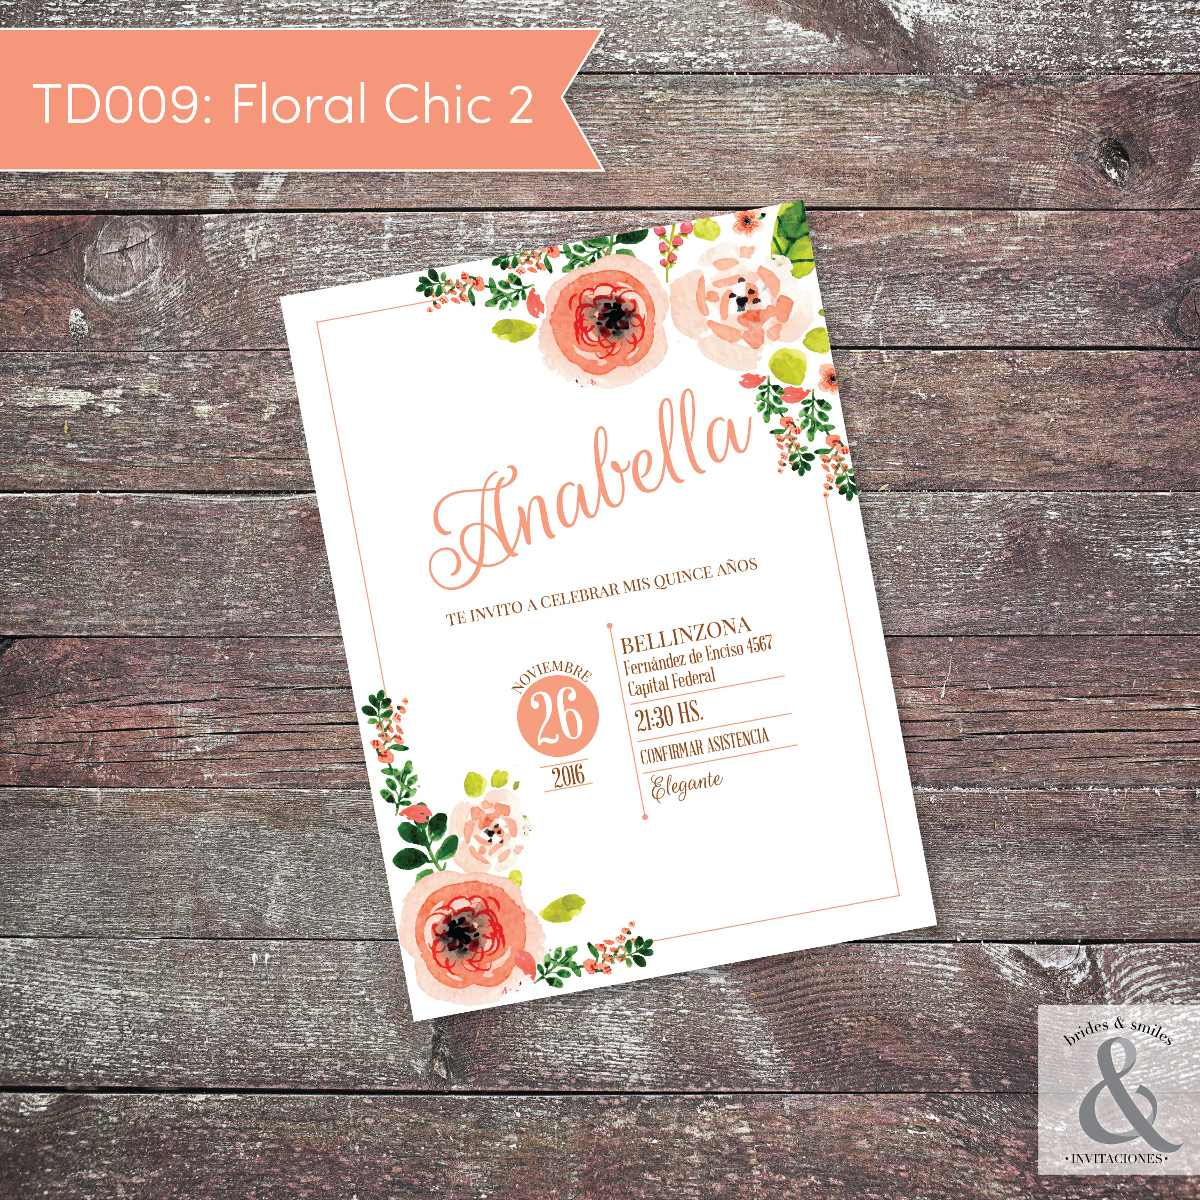 Invitación digital TD009 (Floral Chic 2)